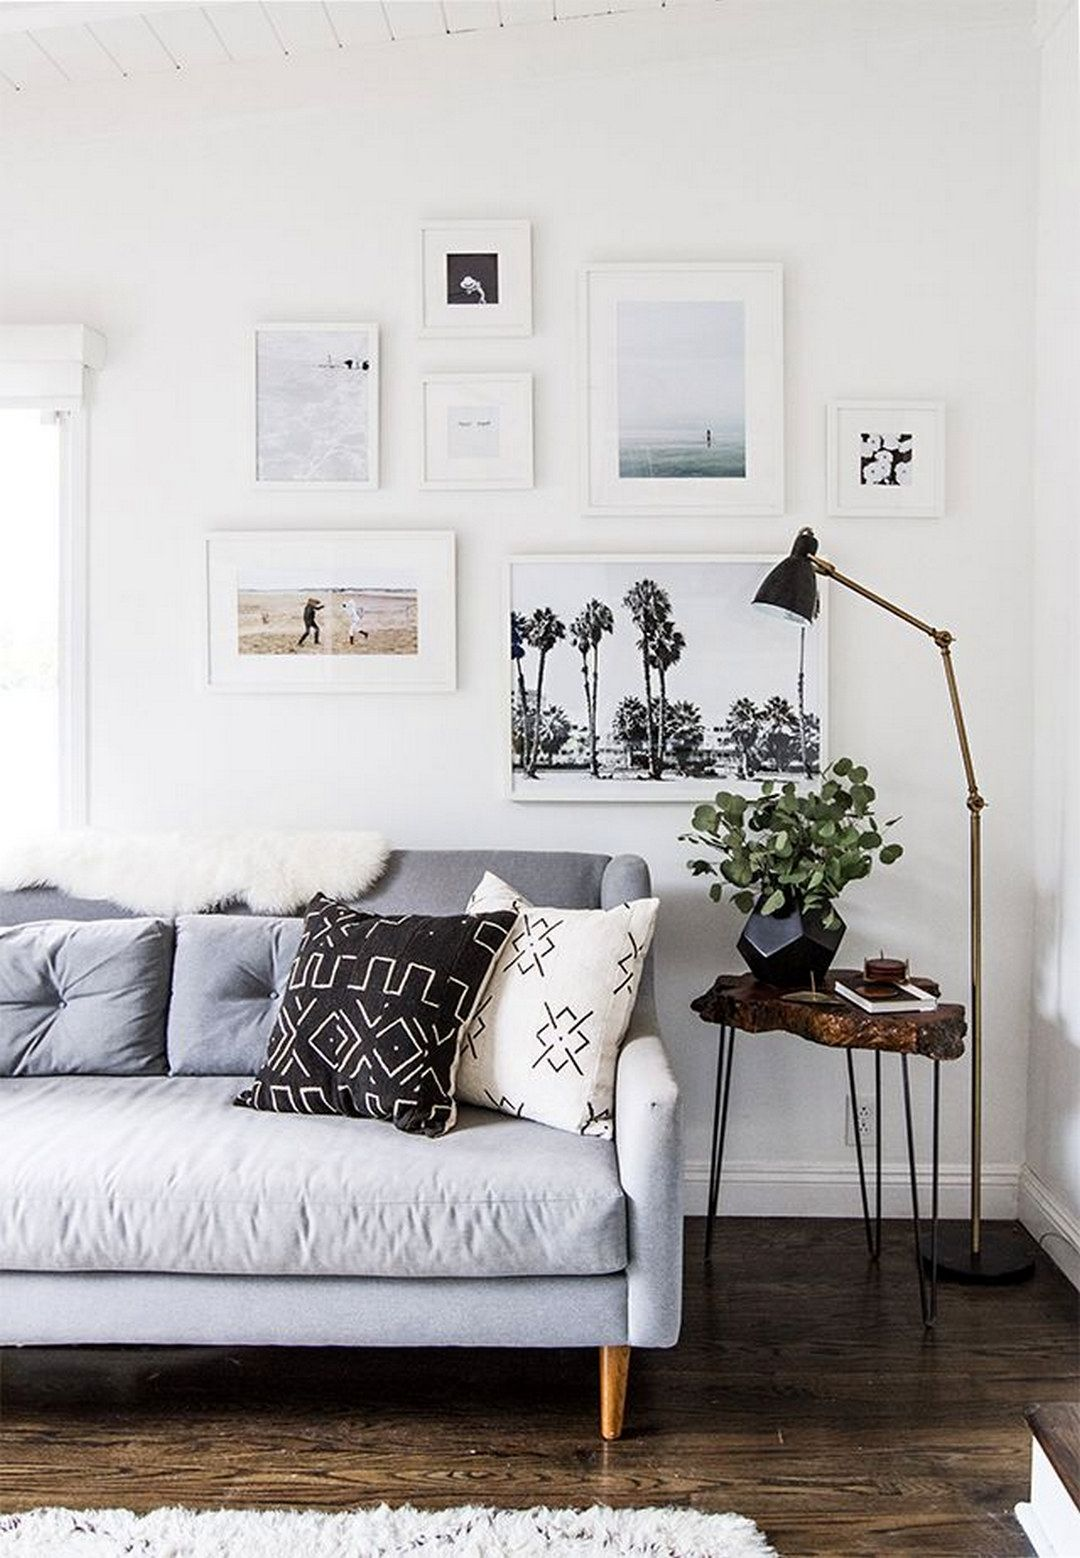 9 Minimalist Living Room Decoration Tips With Images